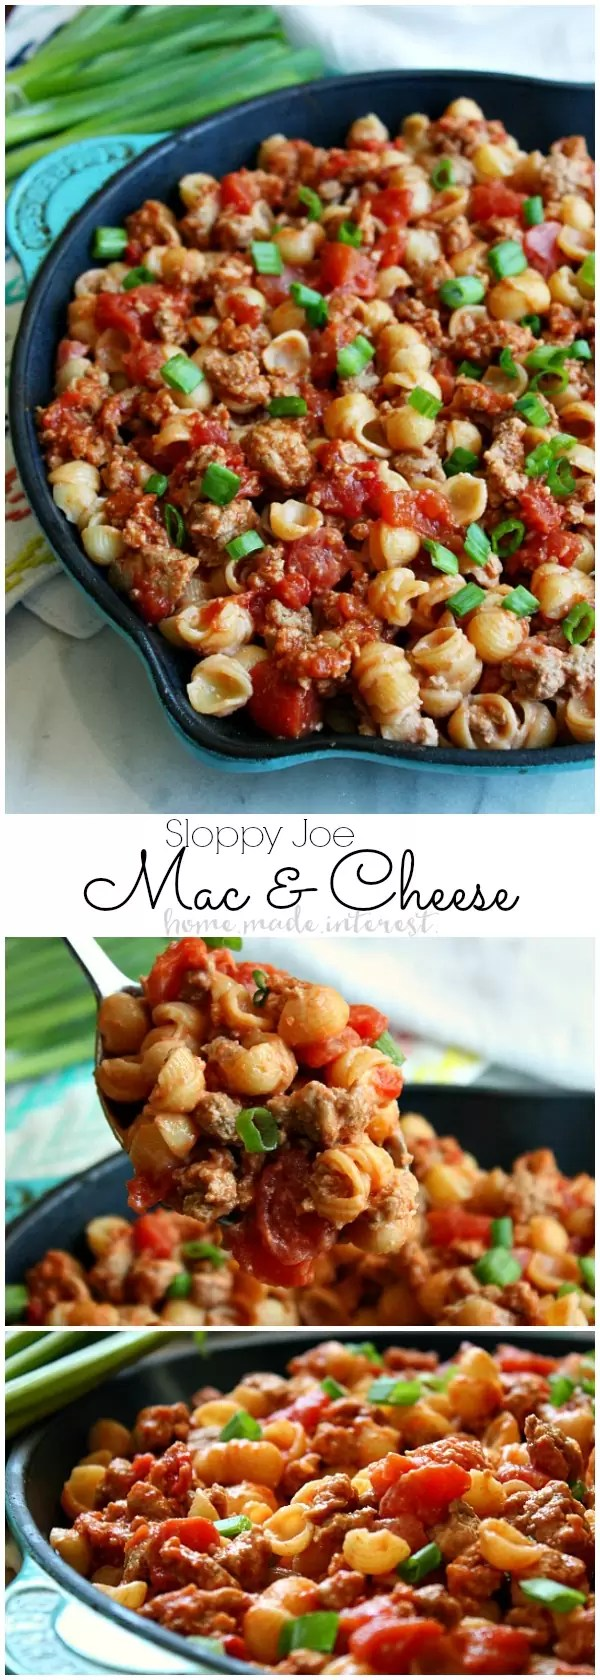 This Sloppy Joe Macaroni and Cheese is a mac and cheese recipe that the whole family is going to love. This macaroni and cheese recipe is made with organic ingredients for an easy weeknight dinner or a quick lunch. Kids are going to love having two of their favorite recipes together in one awesome dish.